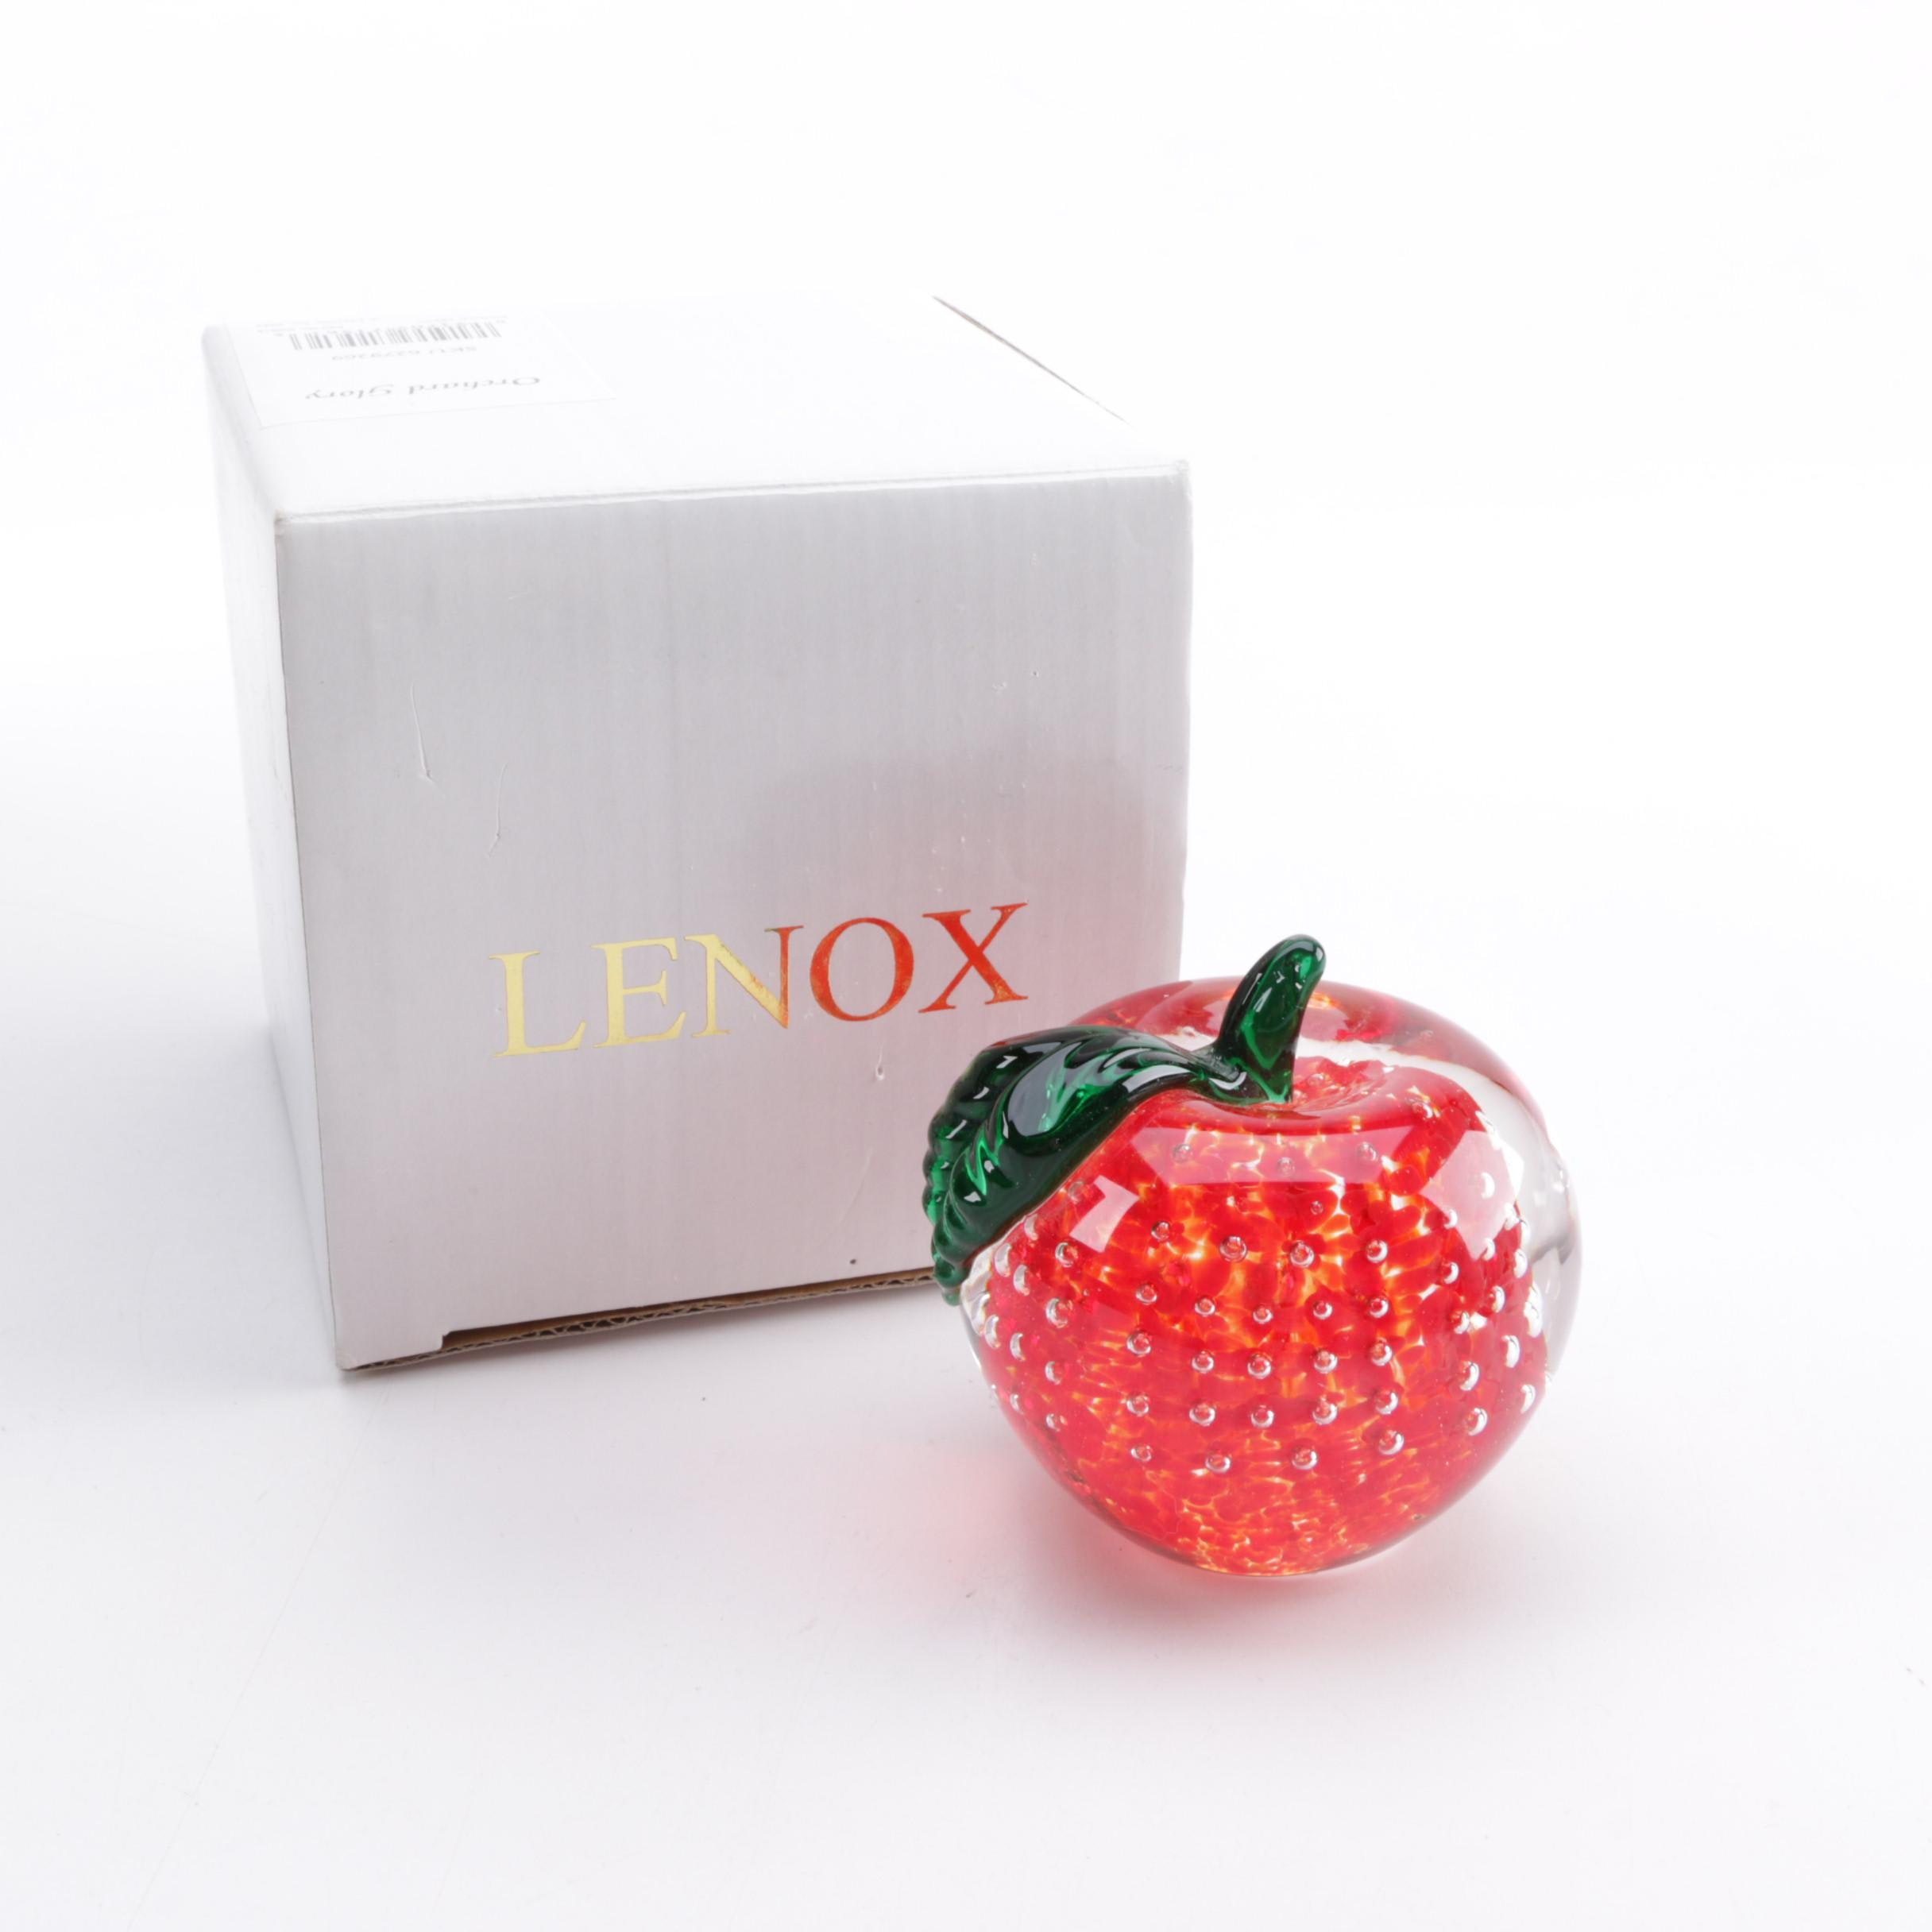 Lenox Apple Paperweight